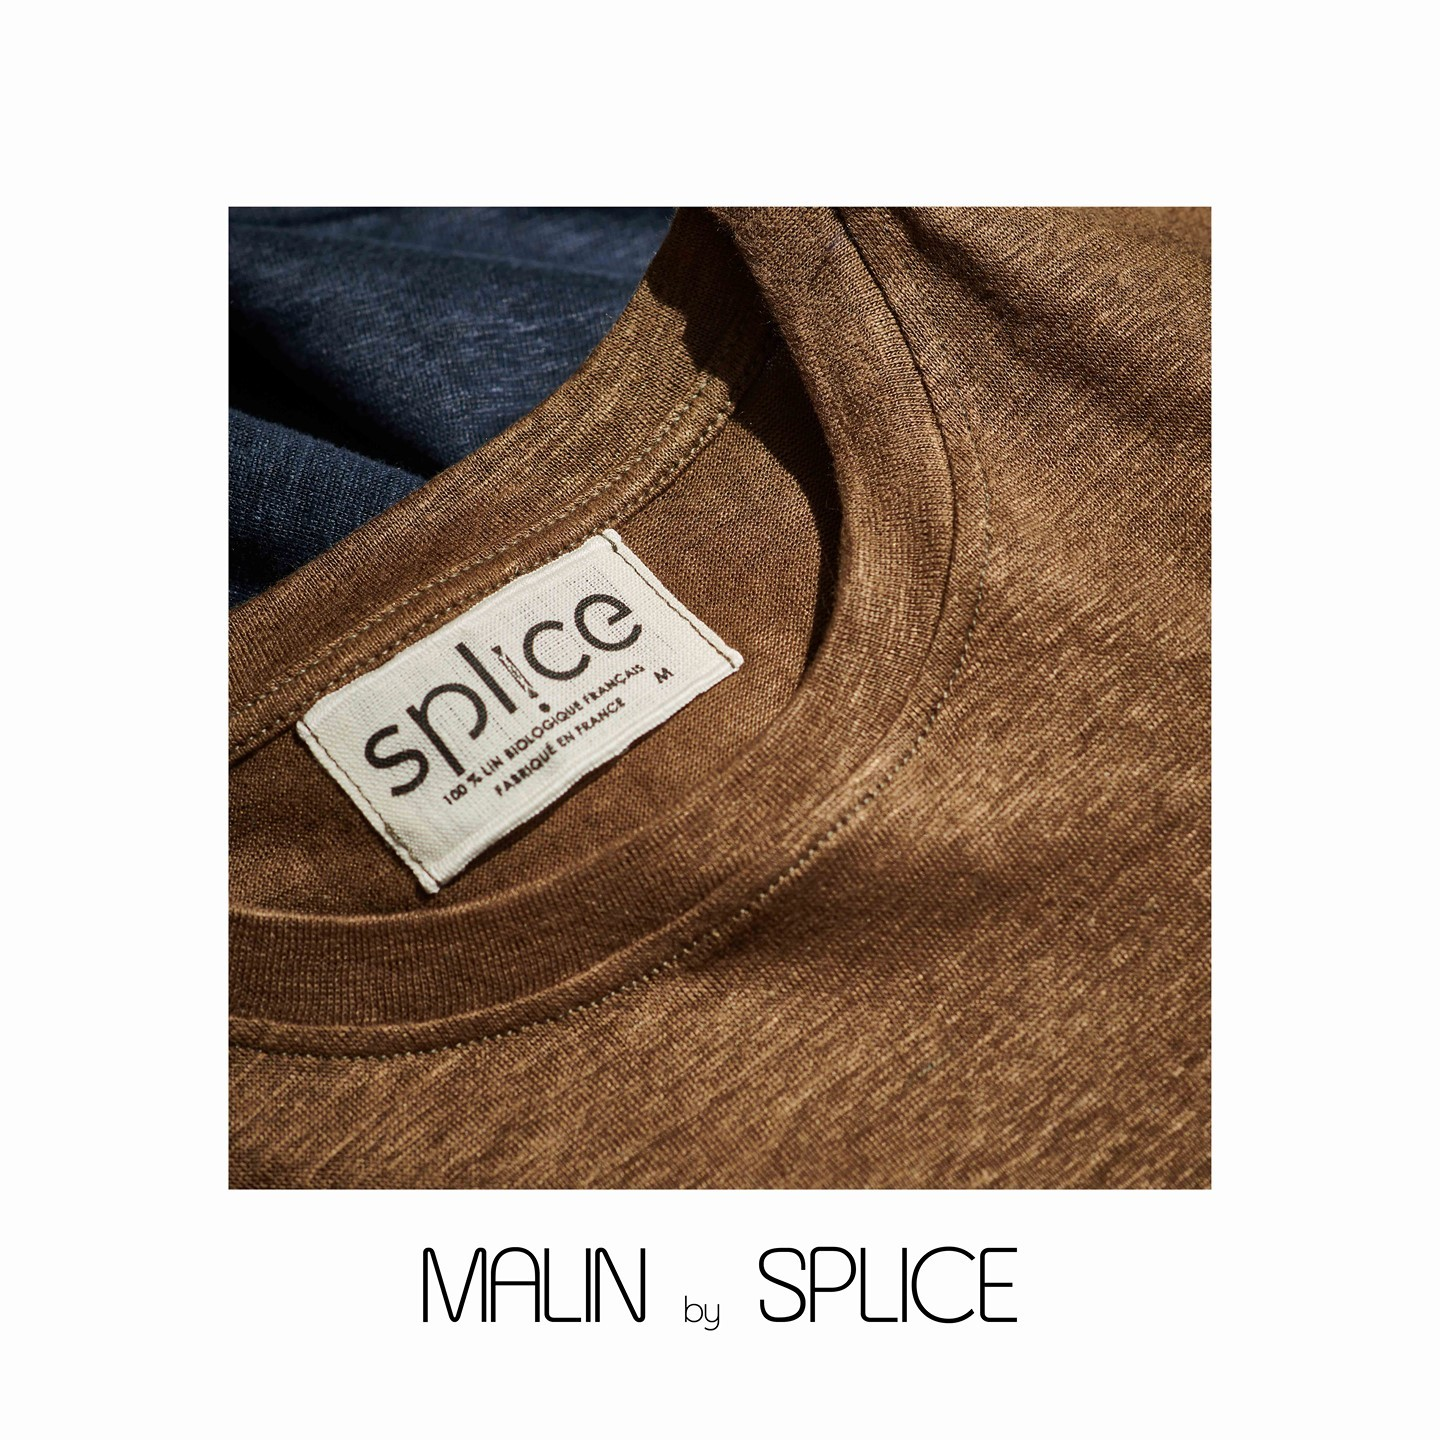 "Notre SPL!CE ""Malin"" en lin biologique pour les journées fraiches d'automne -⁠ -⁠ -⁠ Our long sleeves heavy linen tee shirt -⁠ -⁠ -⁠ #spliceparis #madinfrance #frenchlinen"